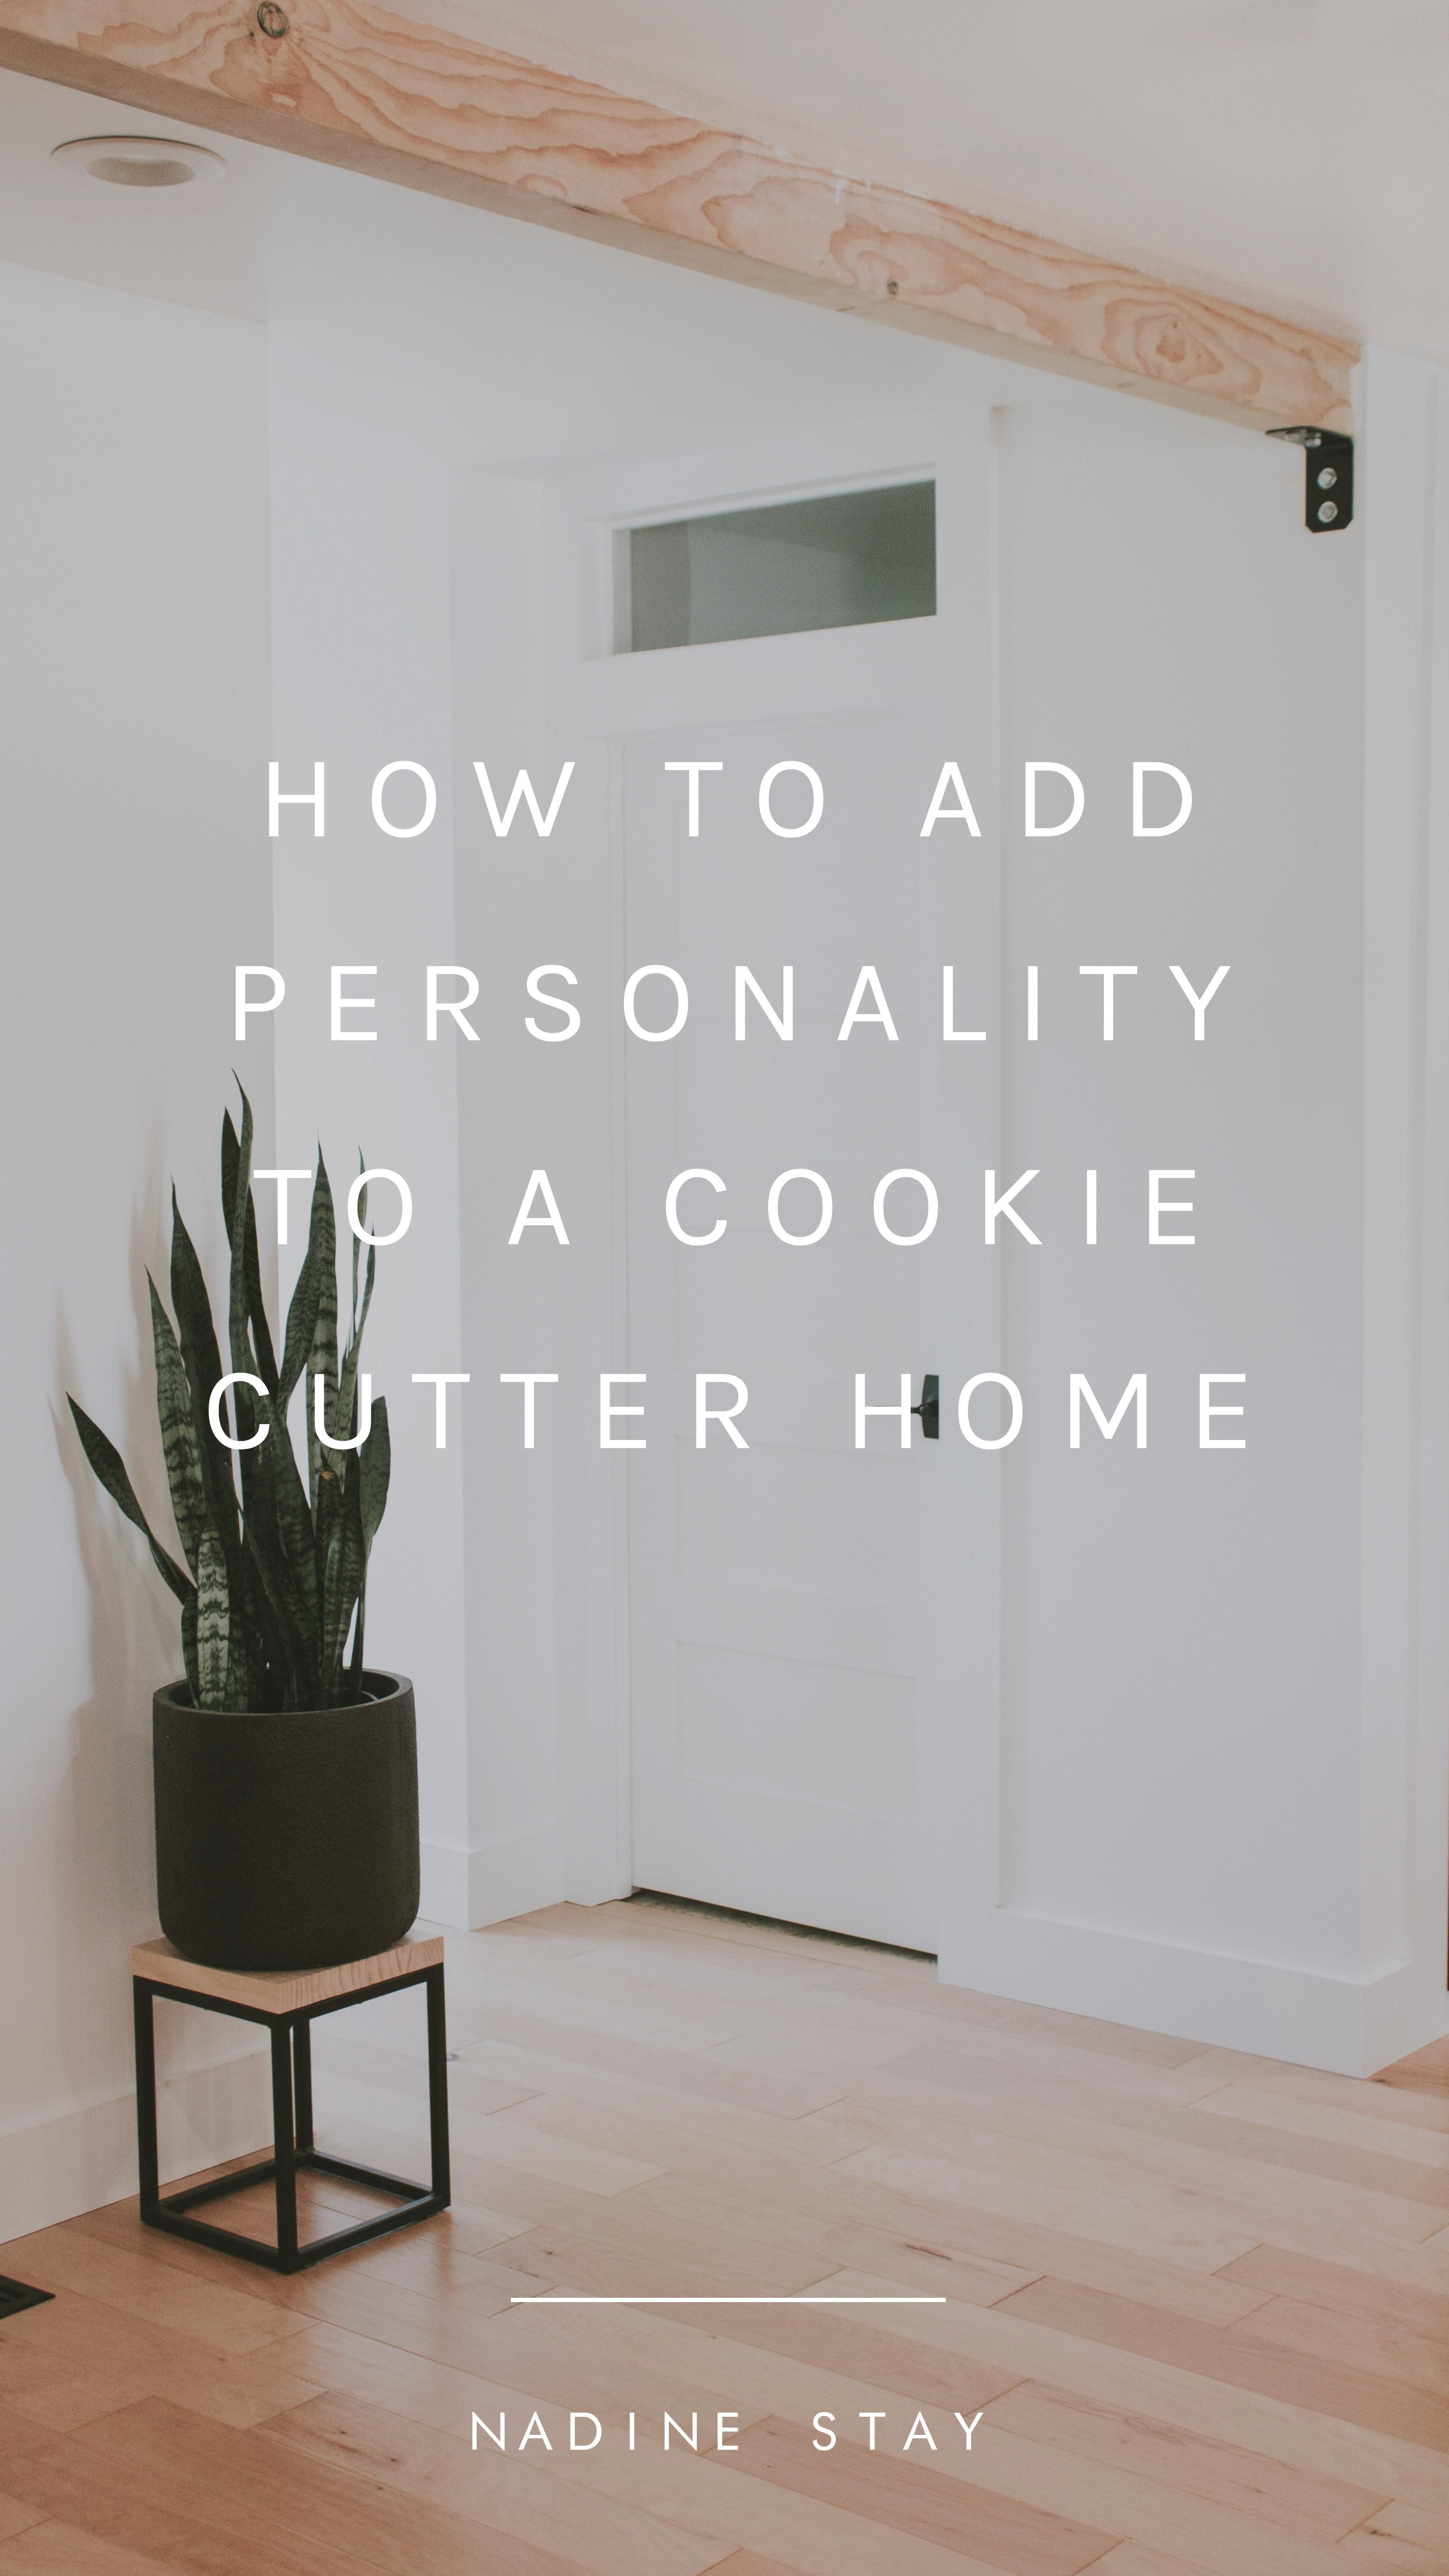 12 EXAMPLES OF HOW TO ADD PERSONALITY TO A COOKIE CUTTER HOME | Nadine Stay